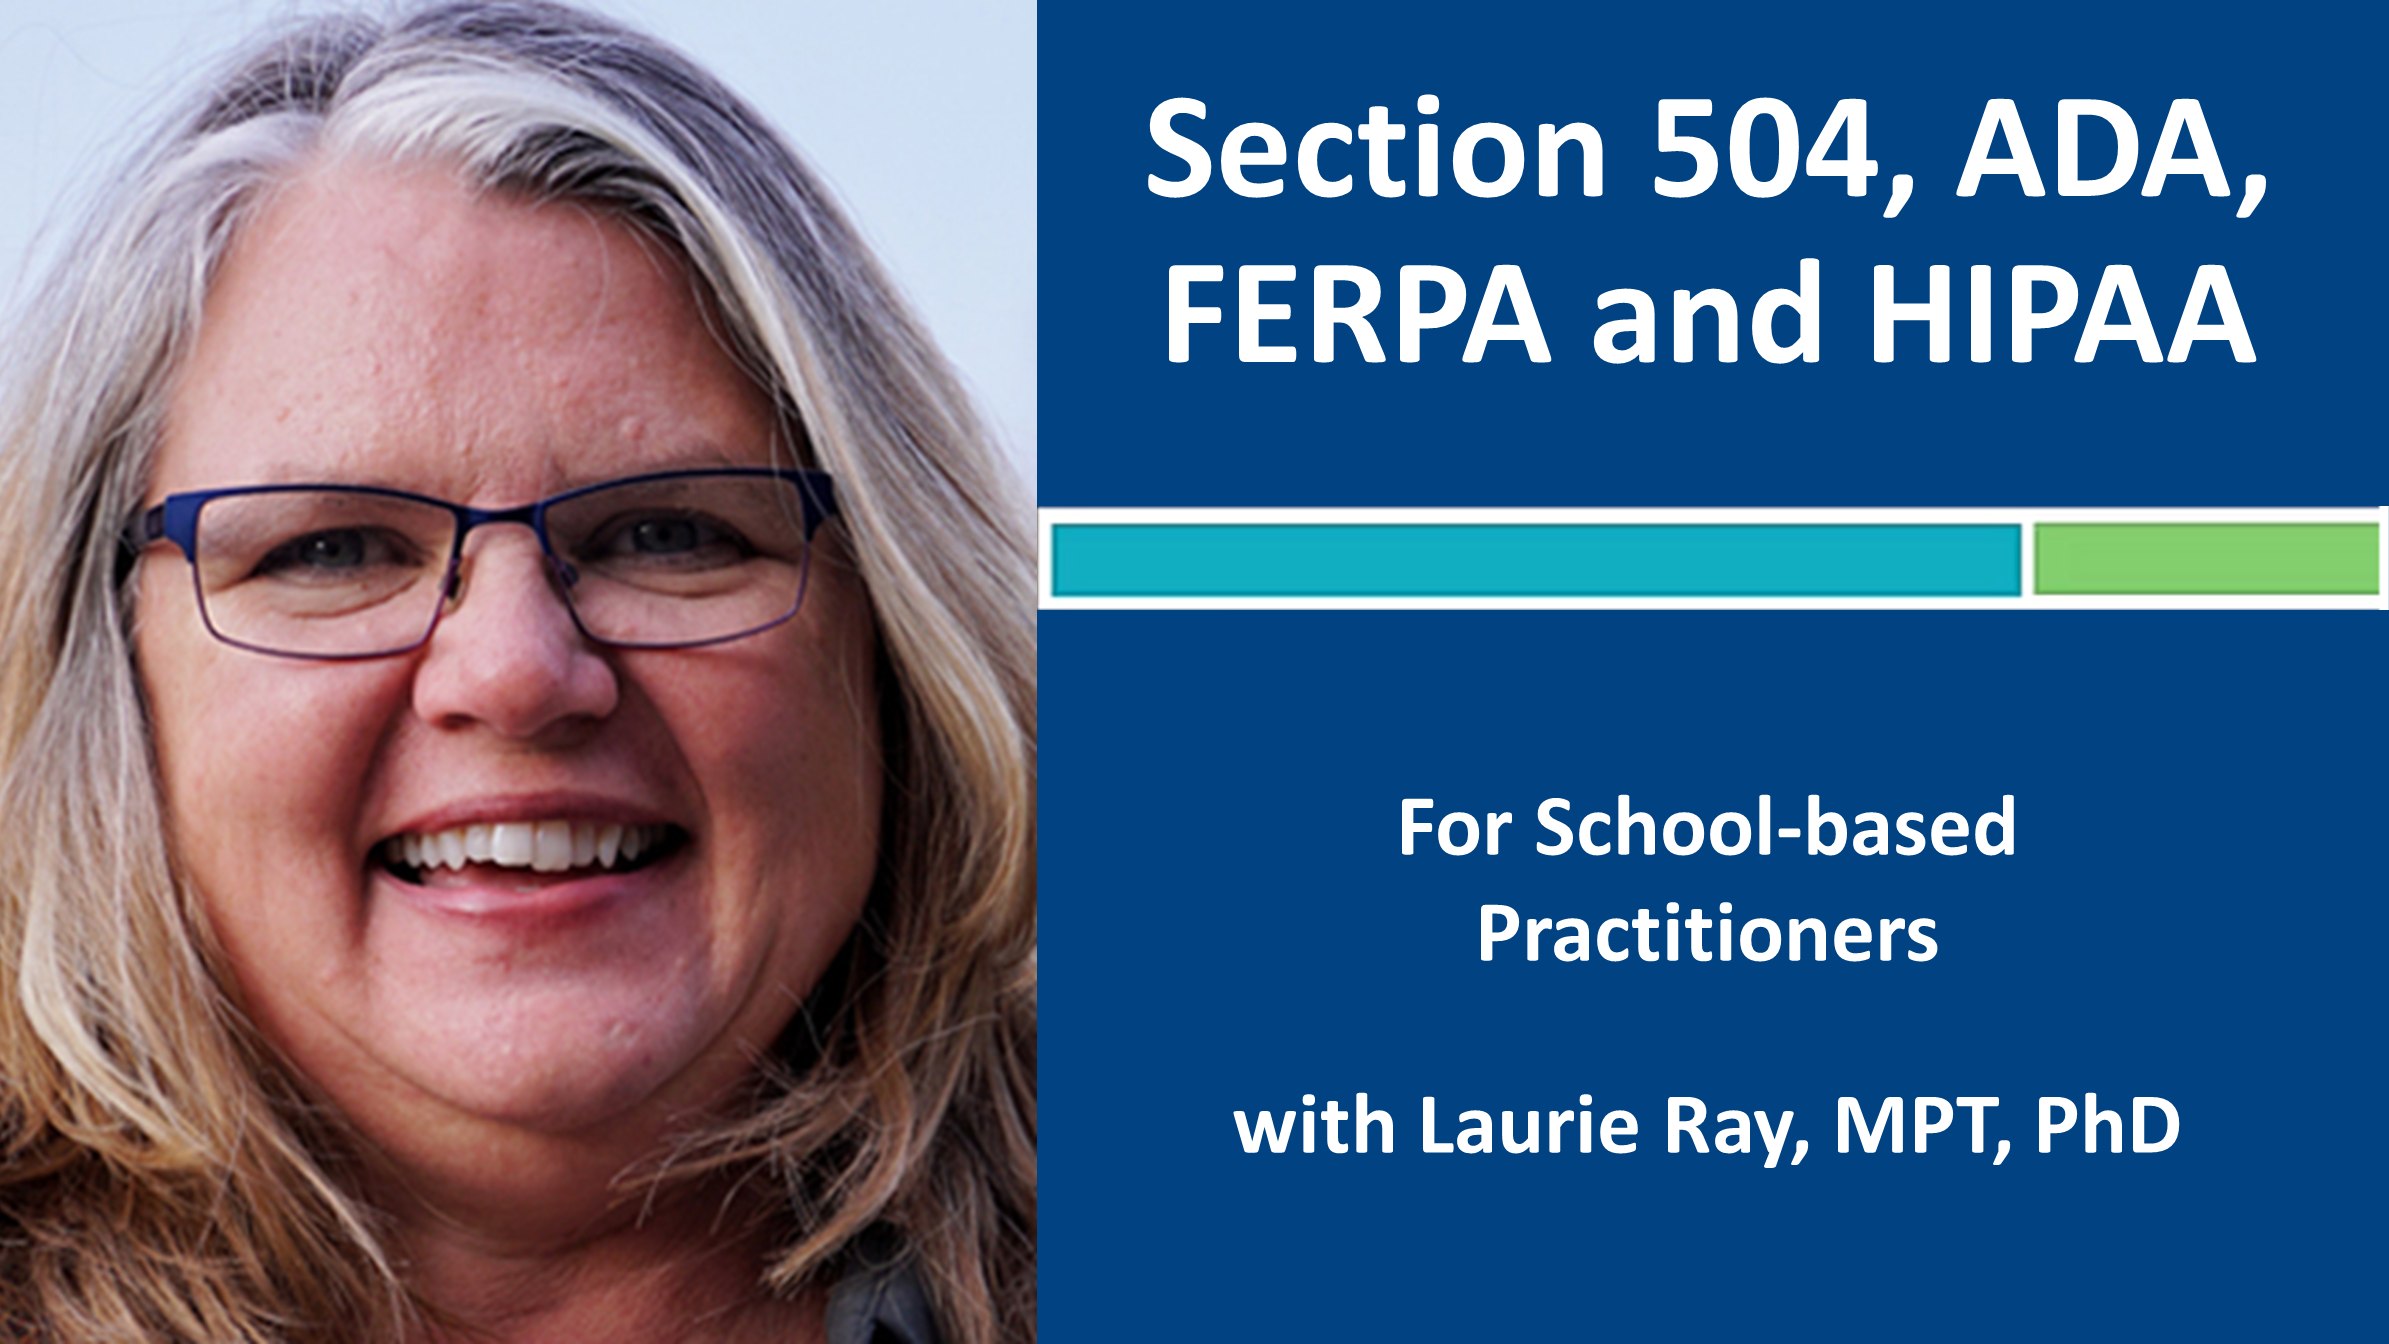 Webinar 4: Section 504, ADA, FERPA and HIPAA with Laurie Ray, MPT, PhD